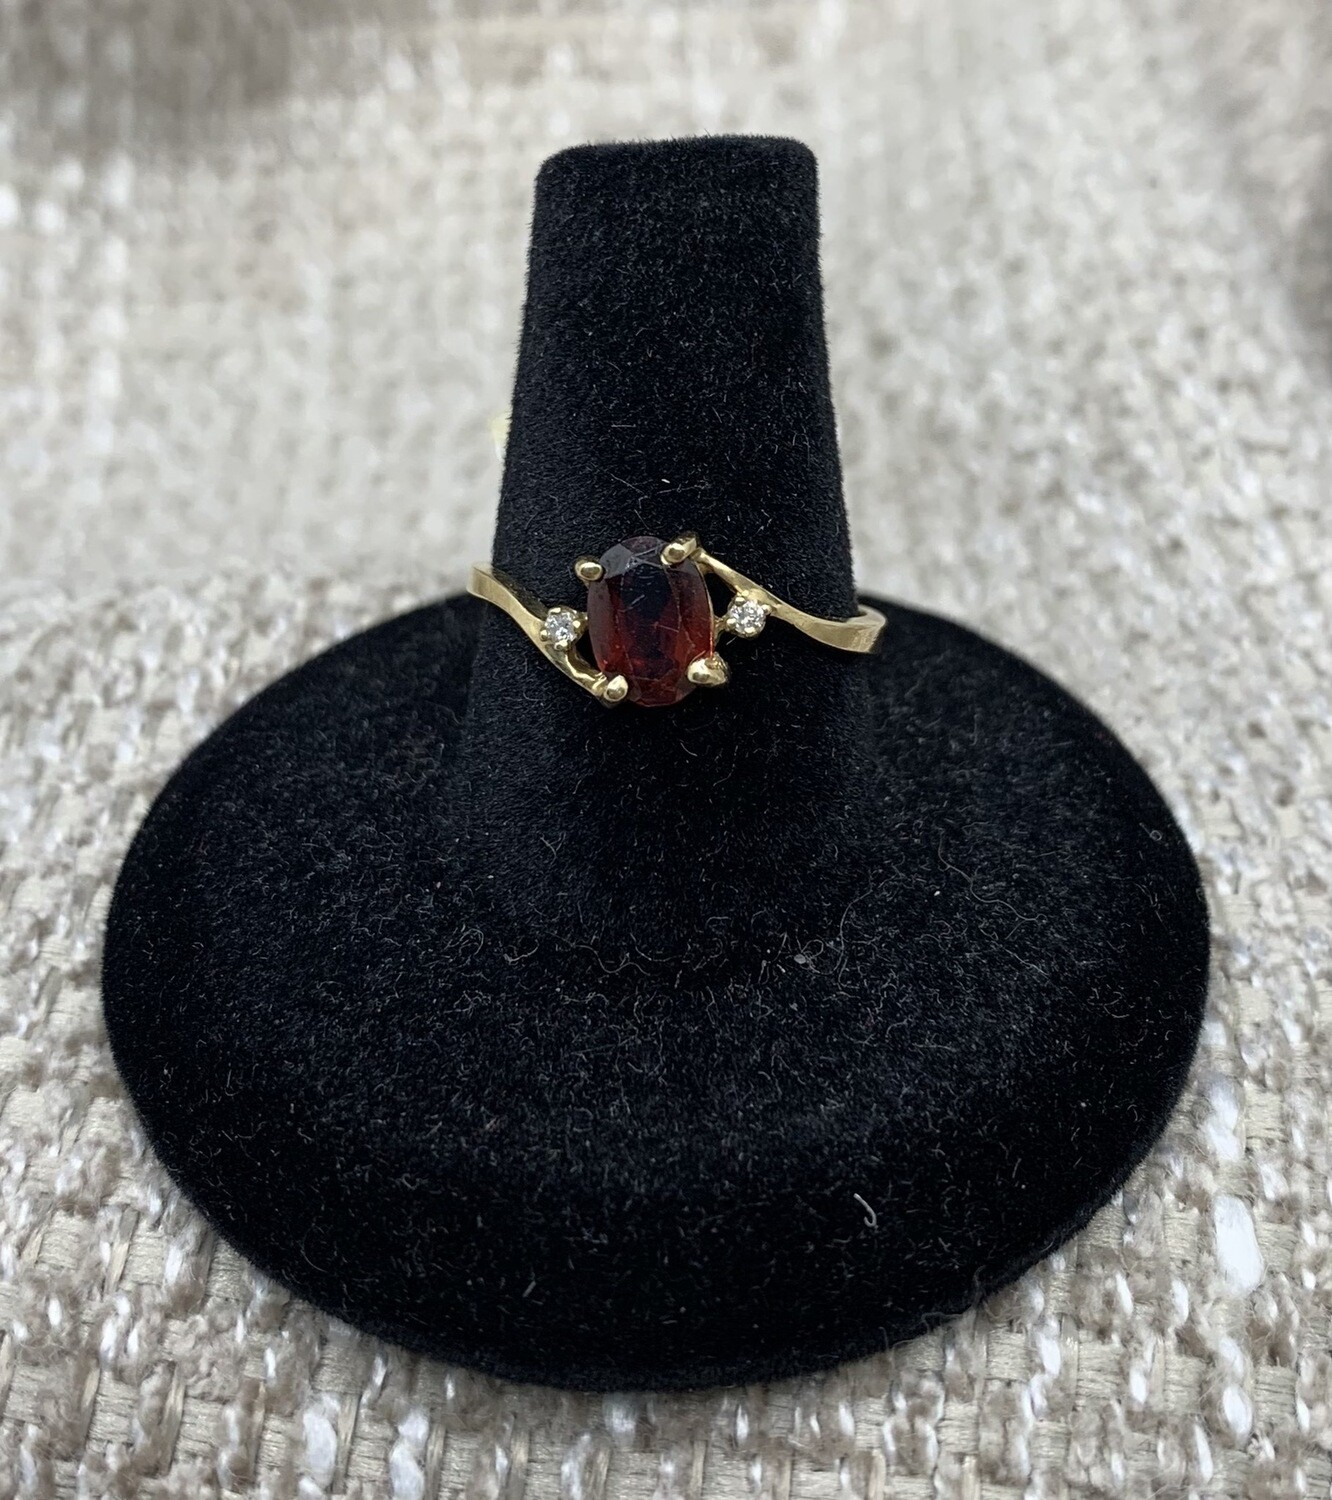 Dainty 14kt Gold Garnet With Diamond Accents Ring